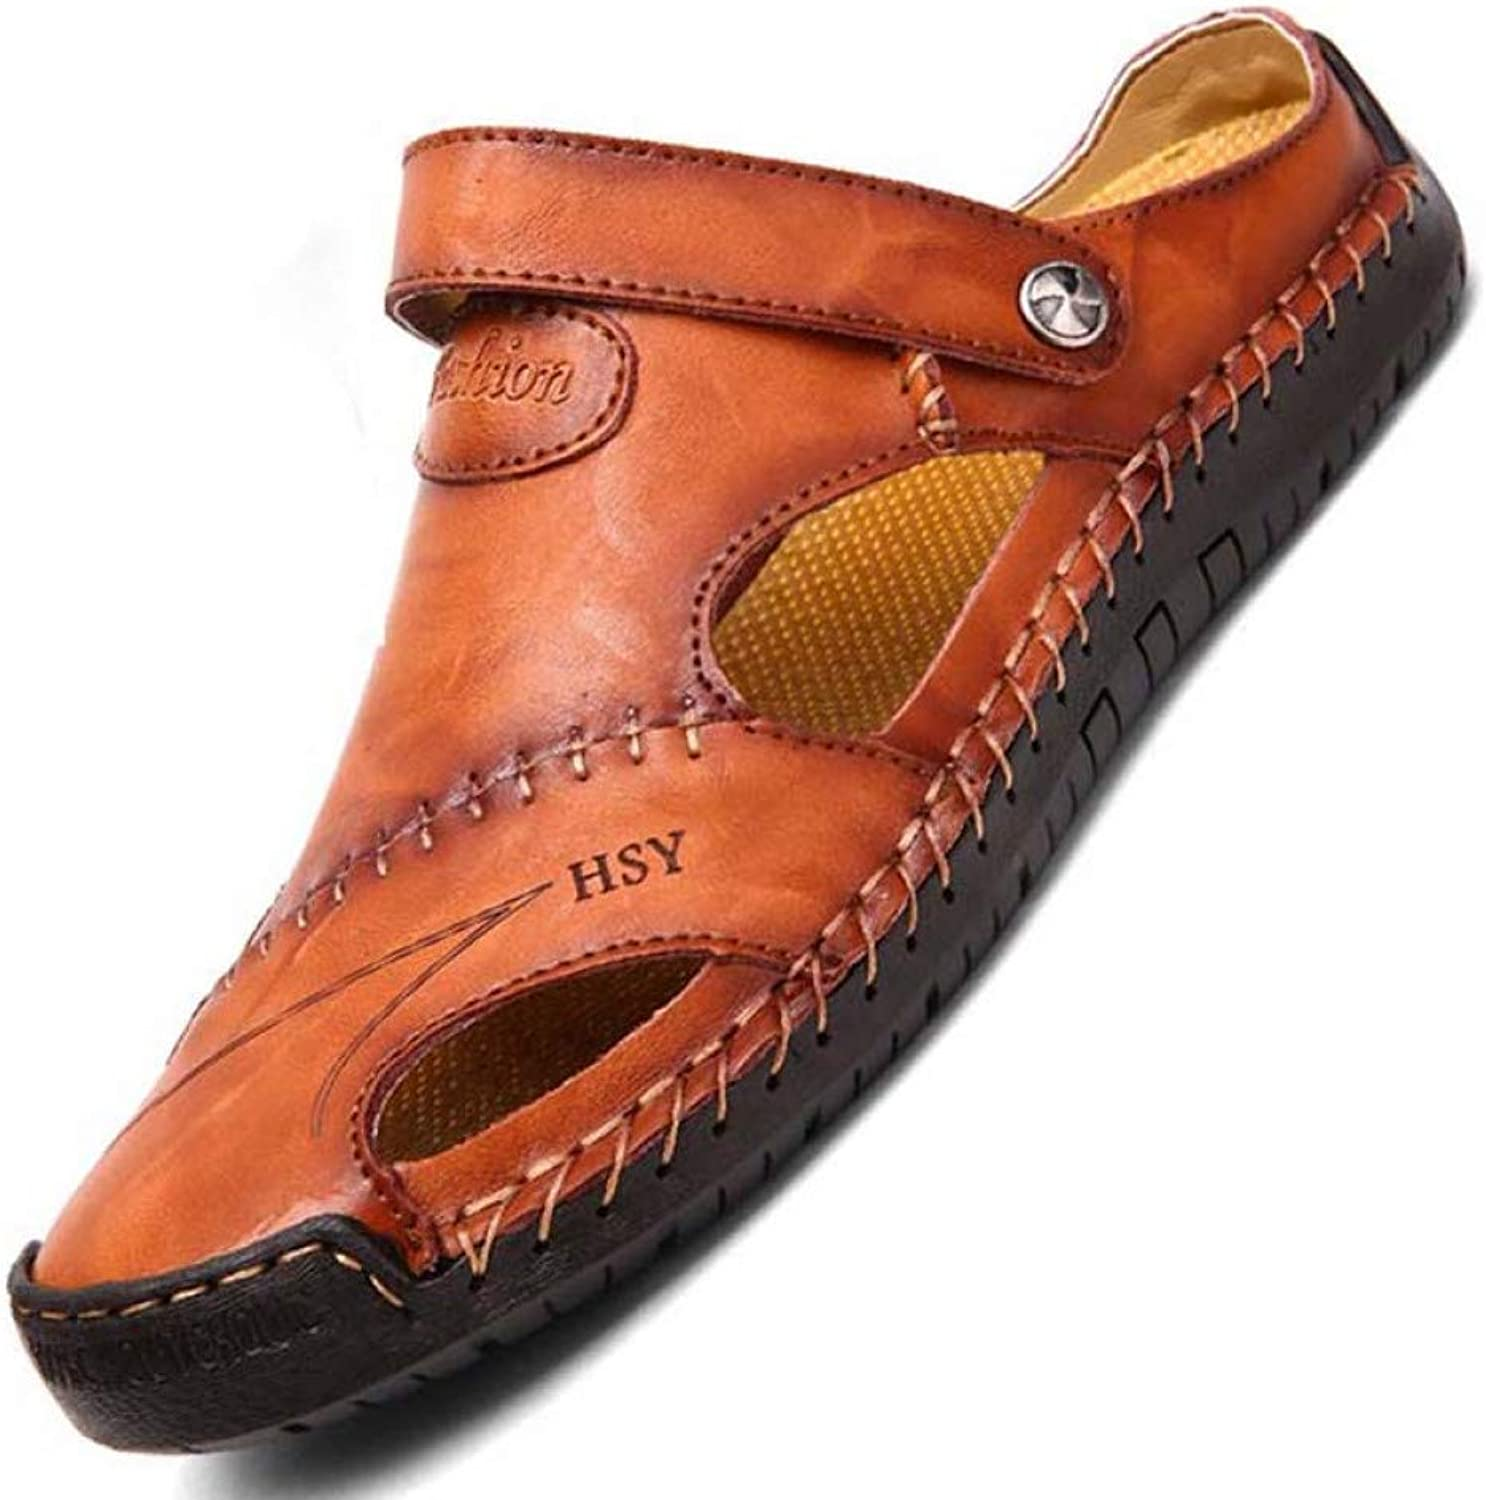 STTXTM Beach Slippers New Genuine Leather Men Sandals shoes Summer Leisure Beach Men's Sandals Sandals Slippers Bohemia Big Size 38-48 Red-Brown